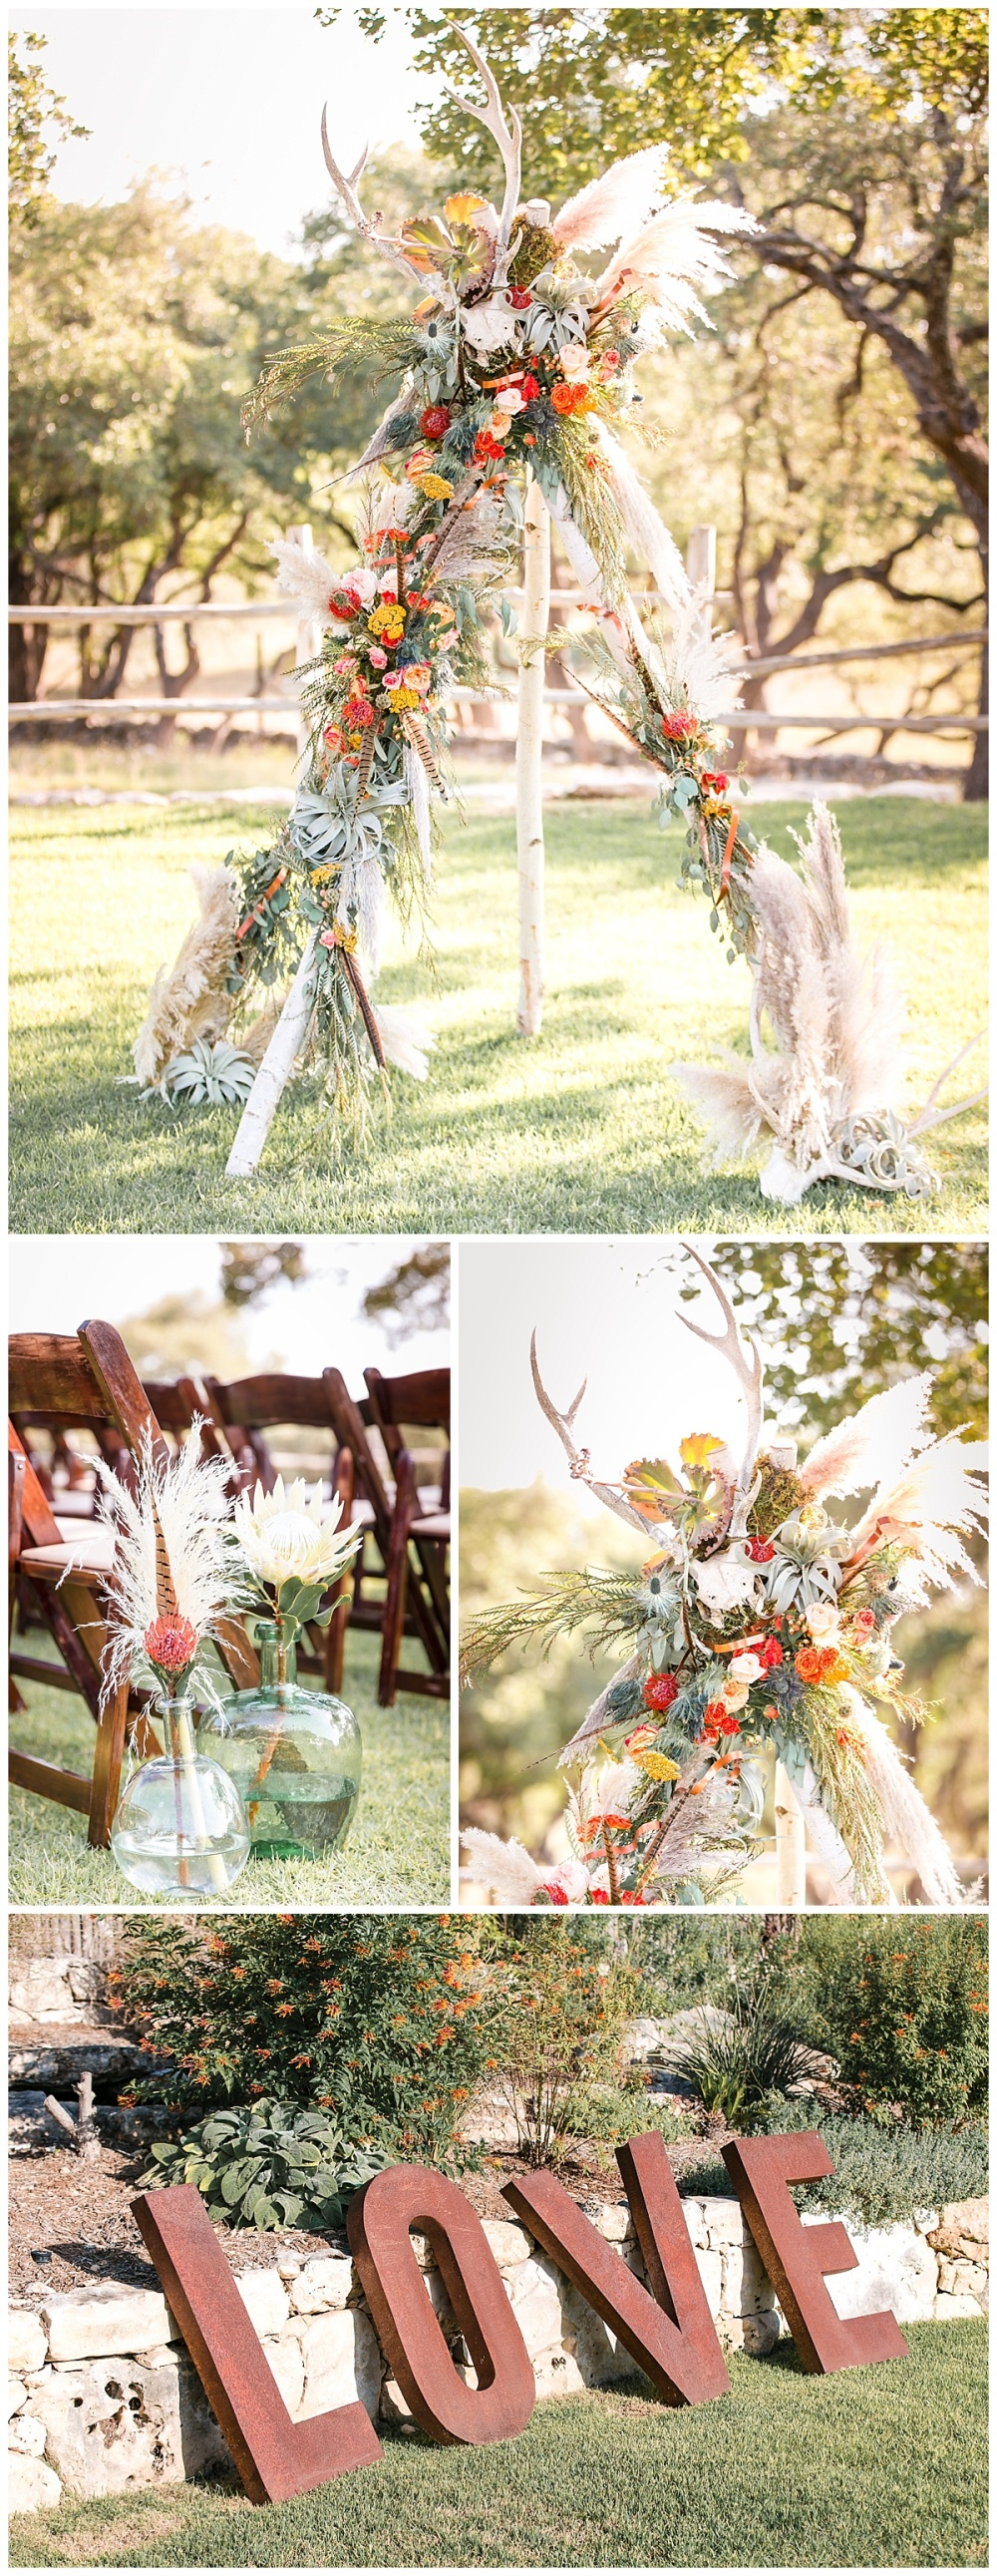 Texas-Wedding-Photographer-Braded-T-Ranch-Kendalia-Bride-Groom-Southwestern-Style-Carly-Barton-Photography-Vogt_0006.jpg